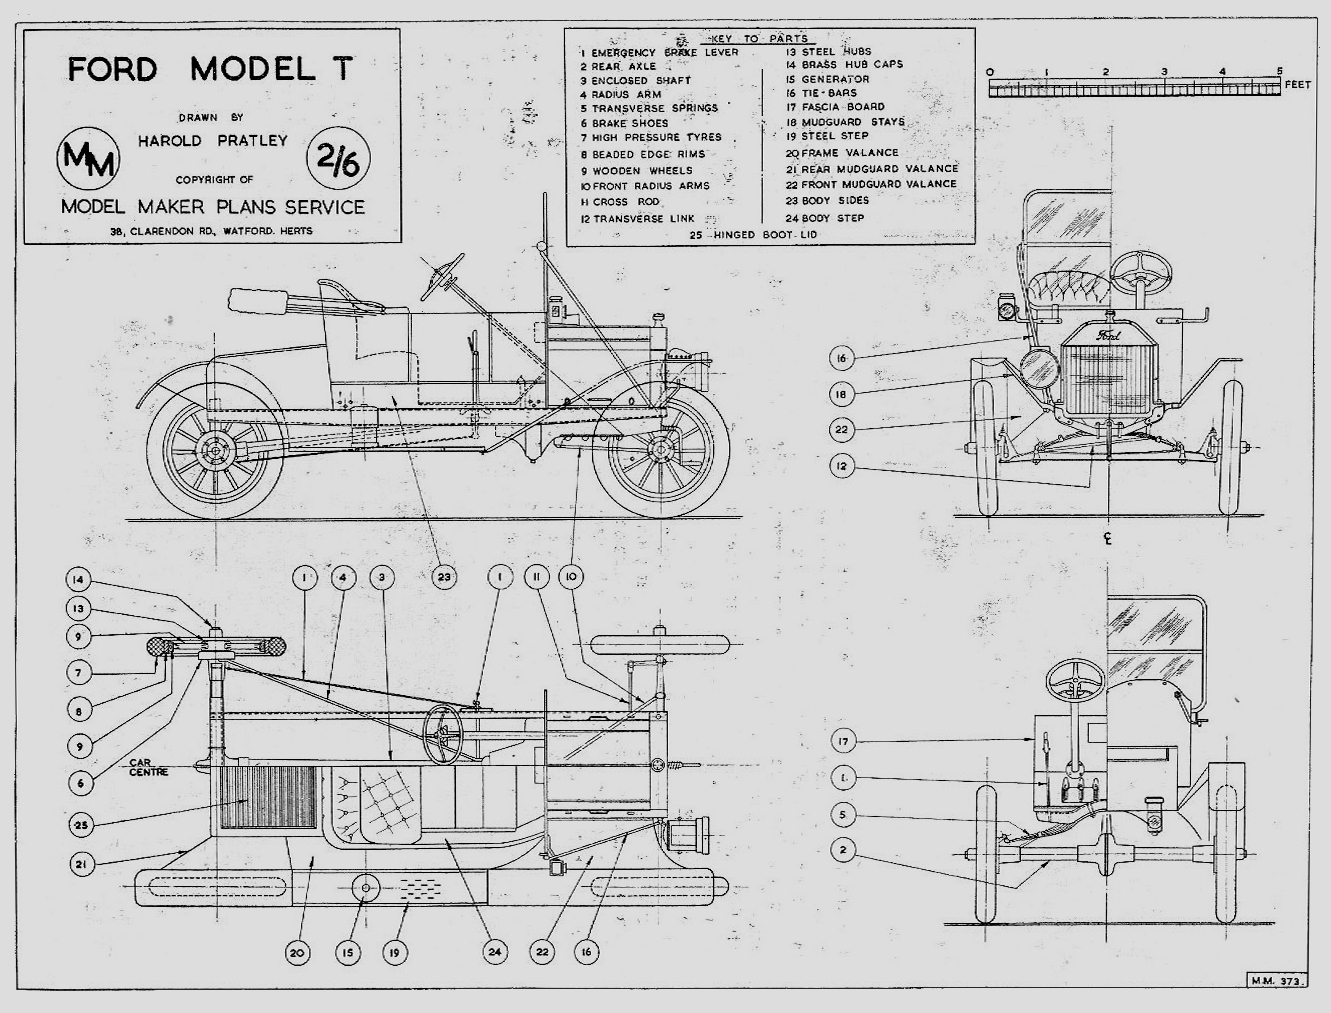 hight resolution of model t ford blueprint by harold pratley